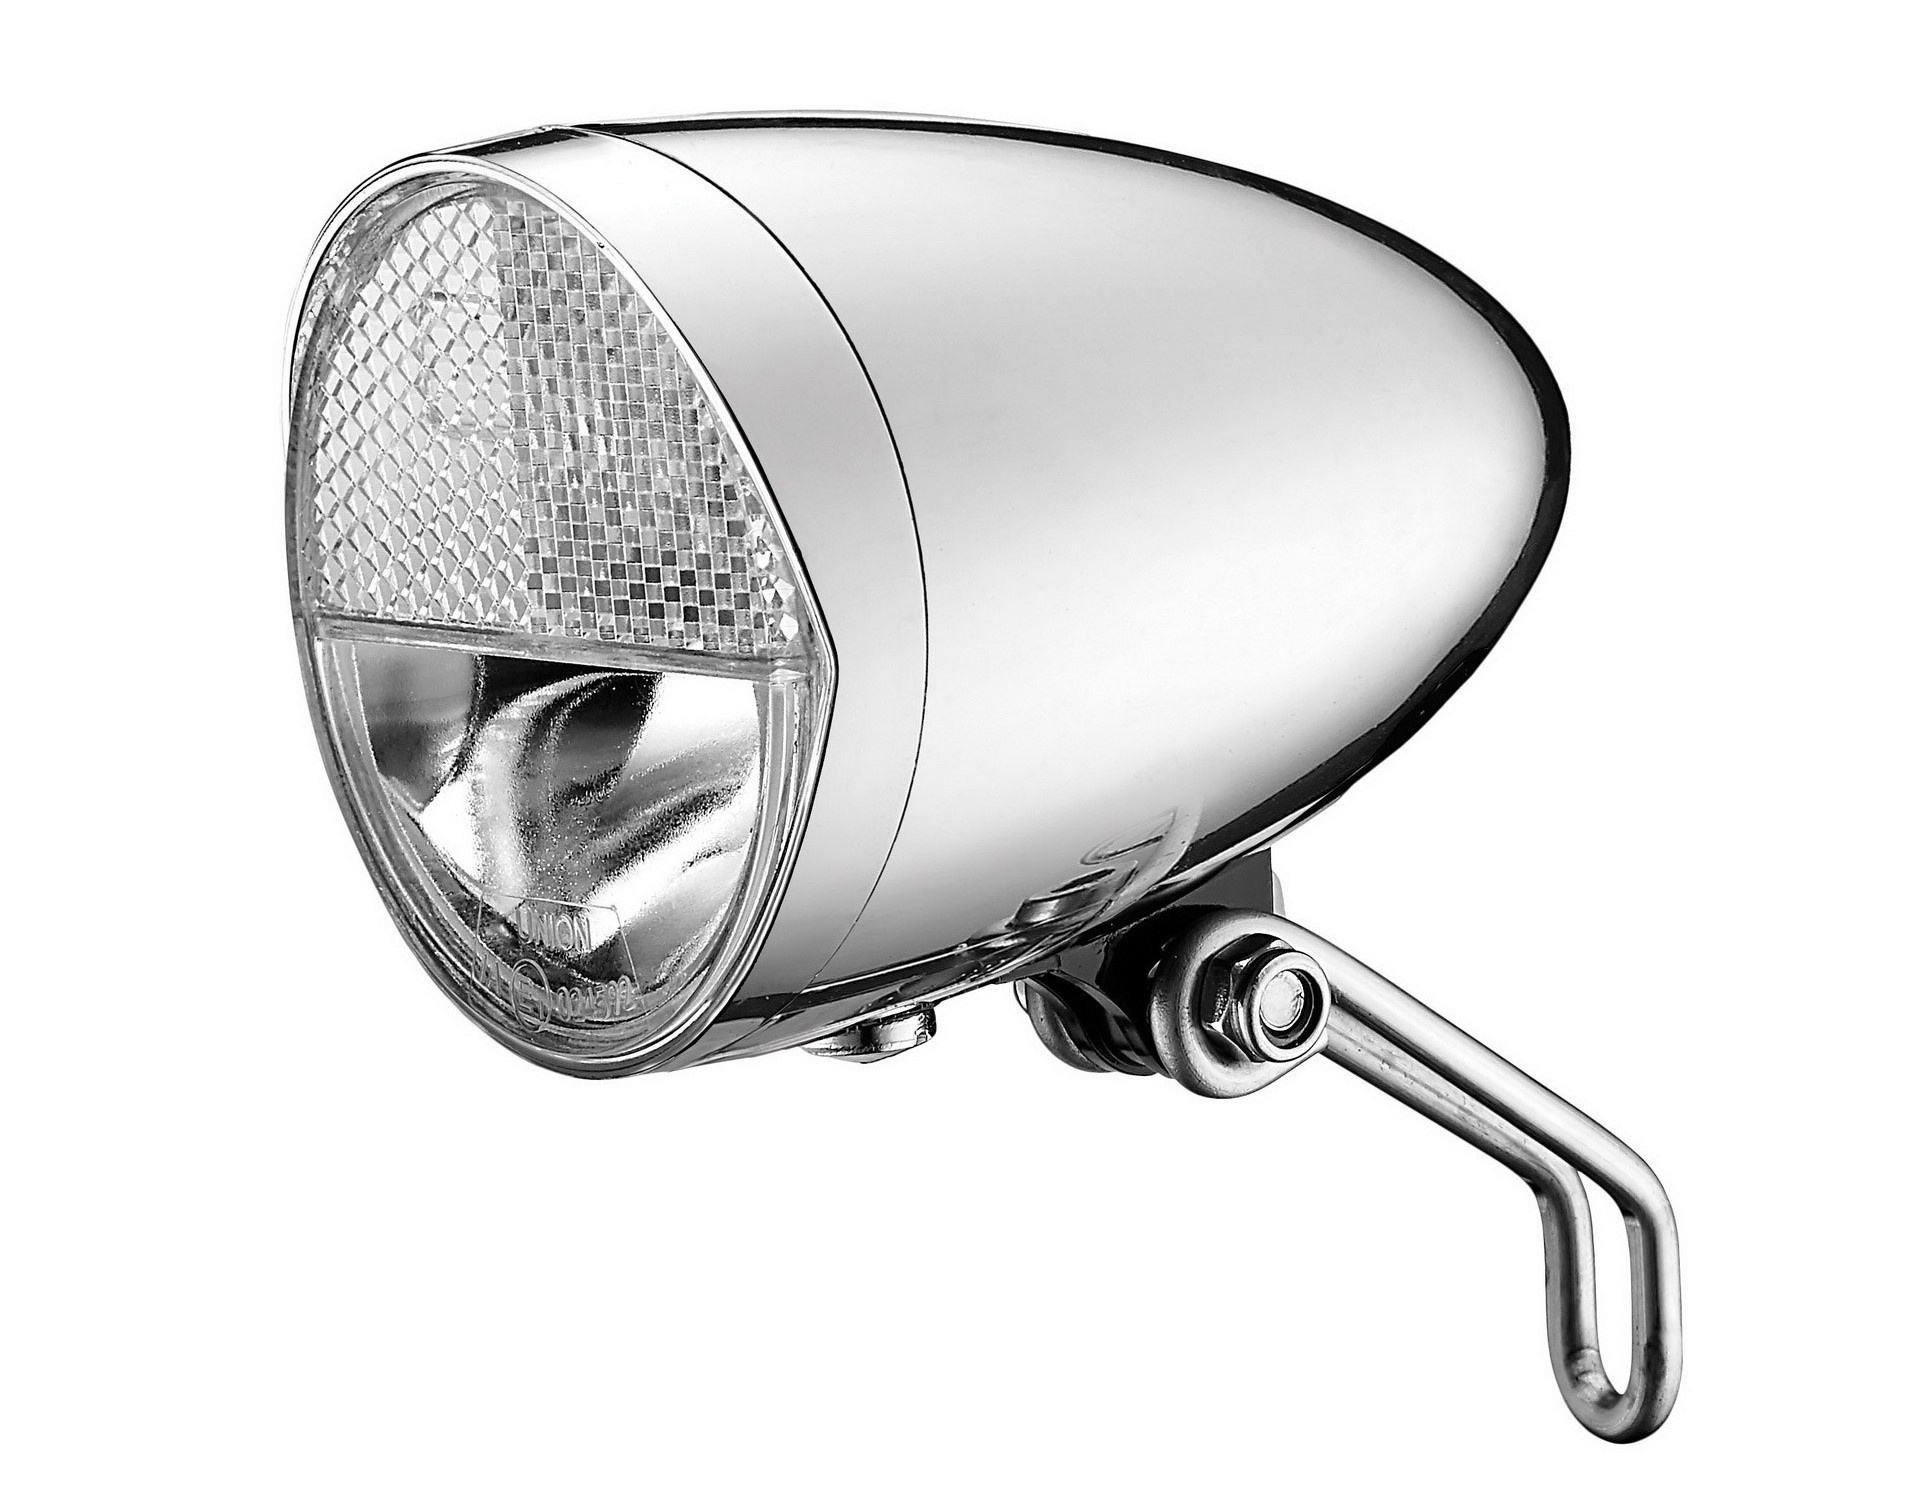 Union LED Classico koplamp E-bike 6-48v 30 LUX chroom